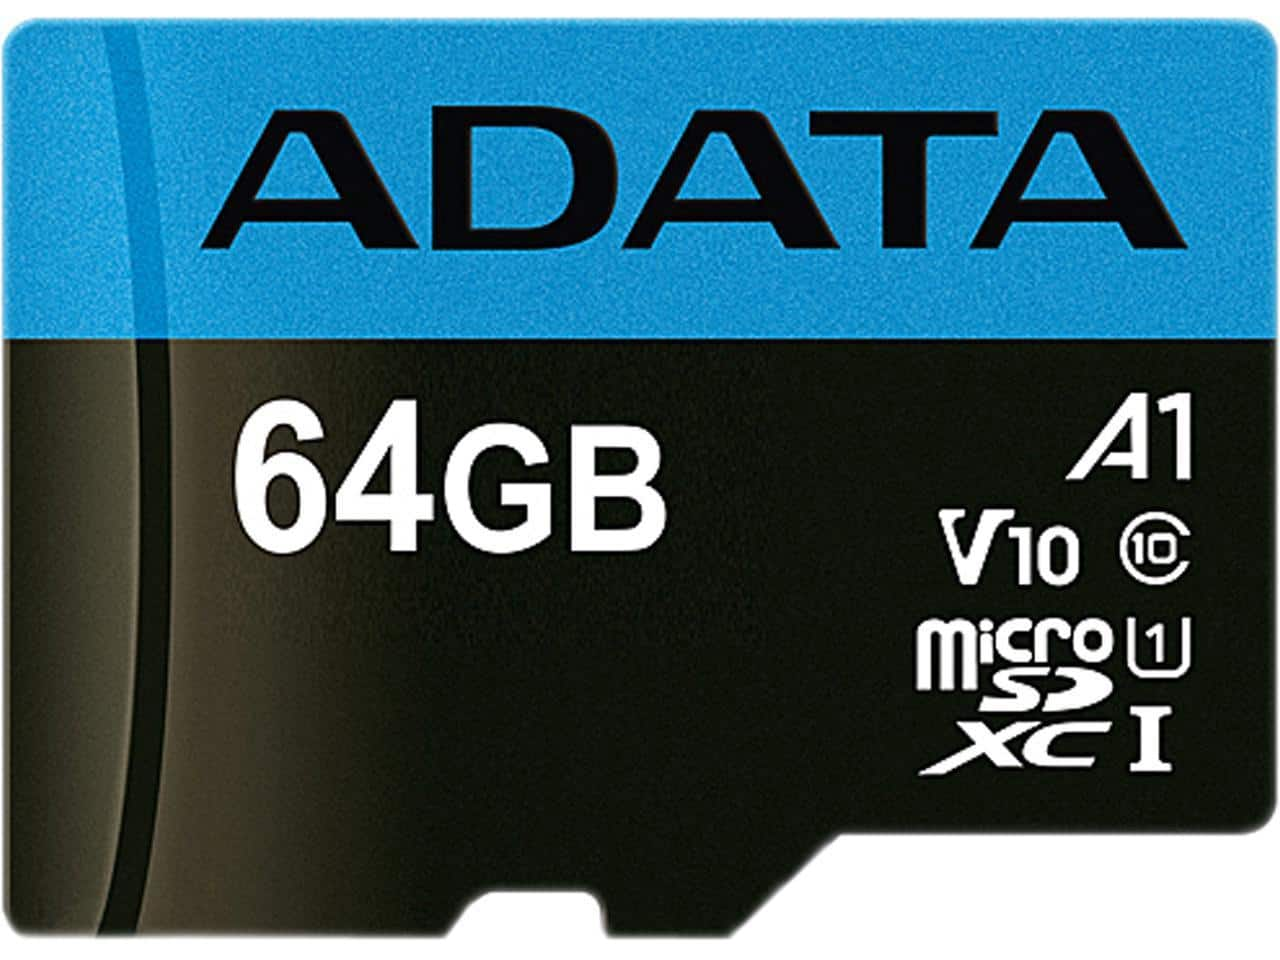 ADATA 64GB Premier microSDXC UHS-I / Class 10 V10 A1 Memory Card with SD Adapter, Speed Up to 100MB/s with Free Shipping $8.99